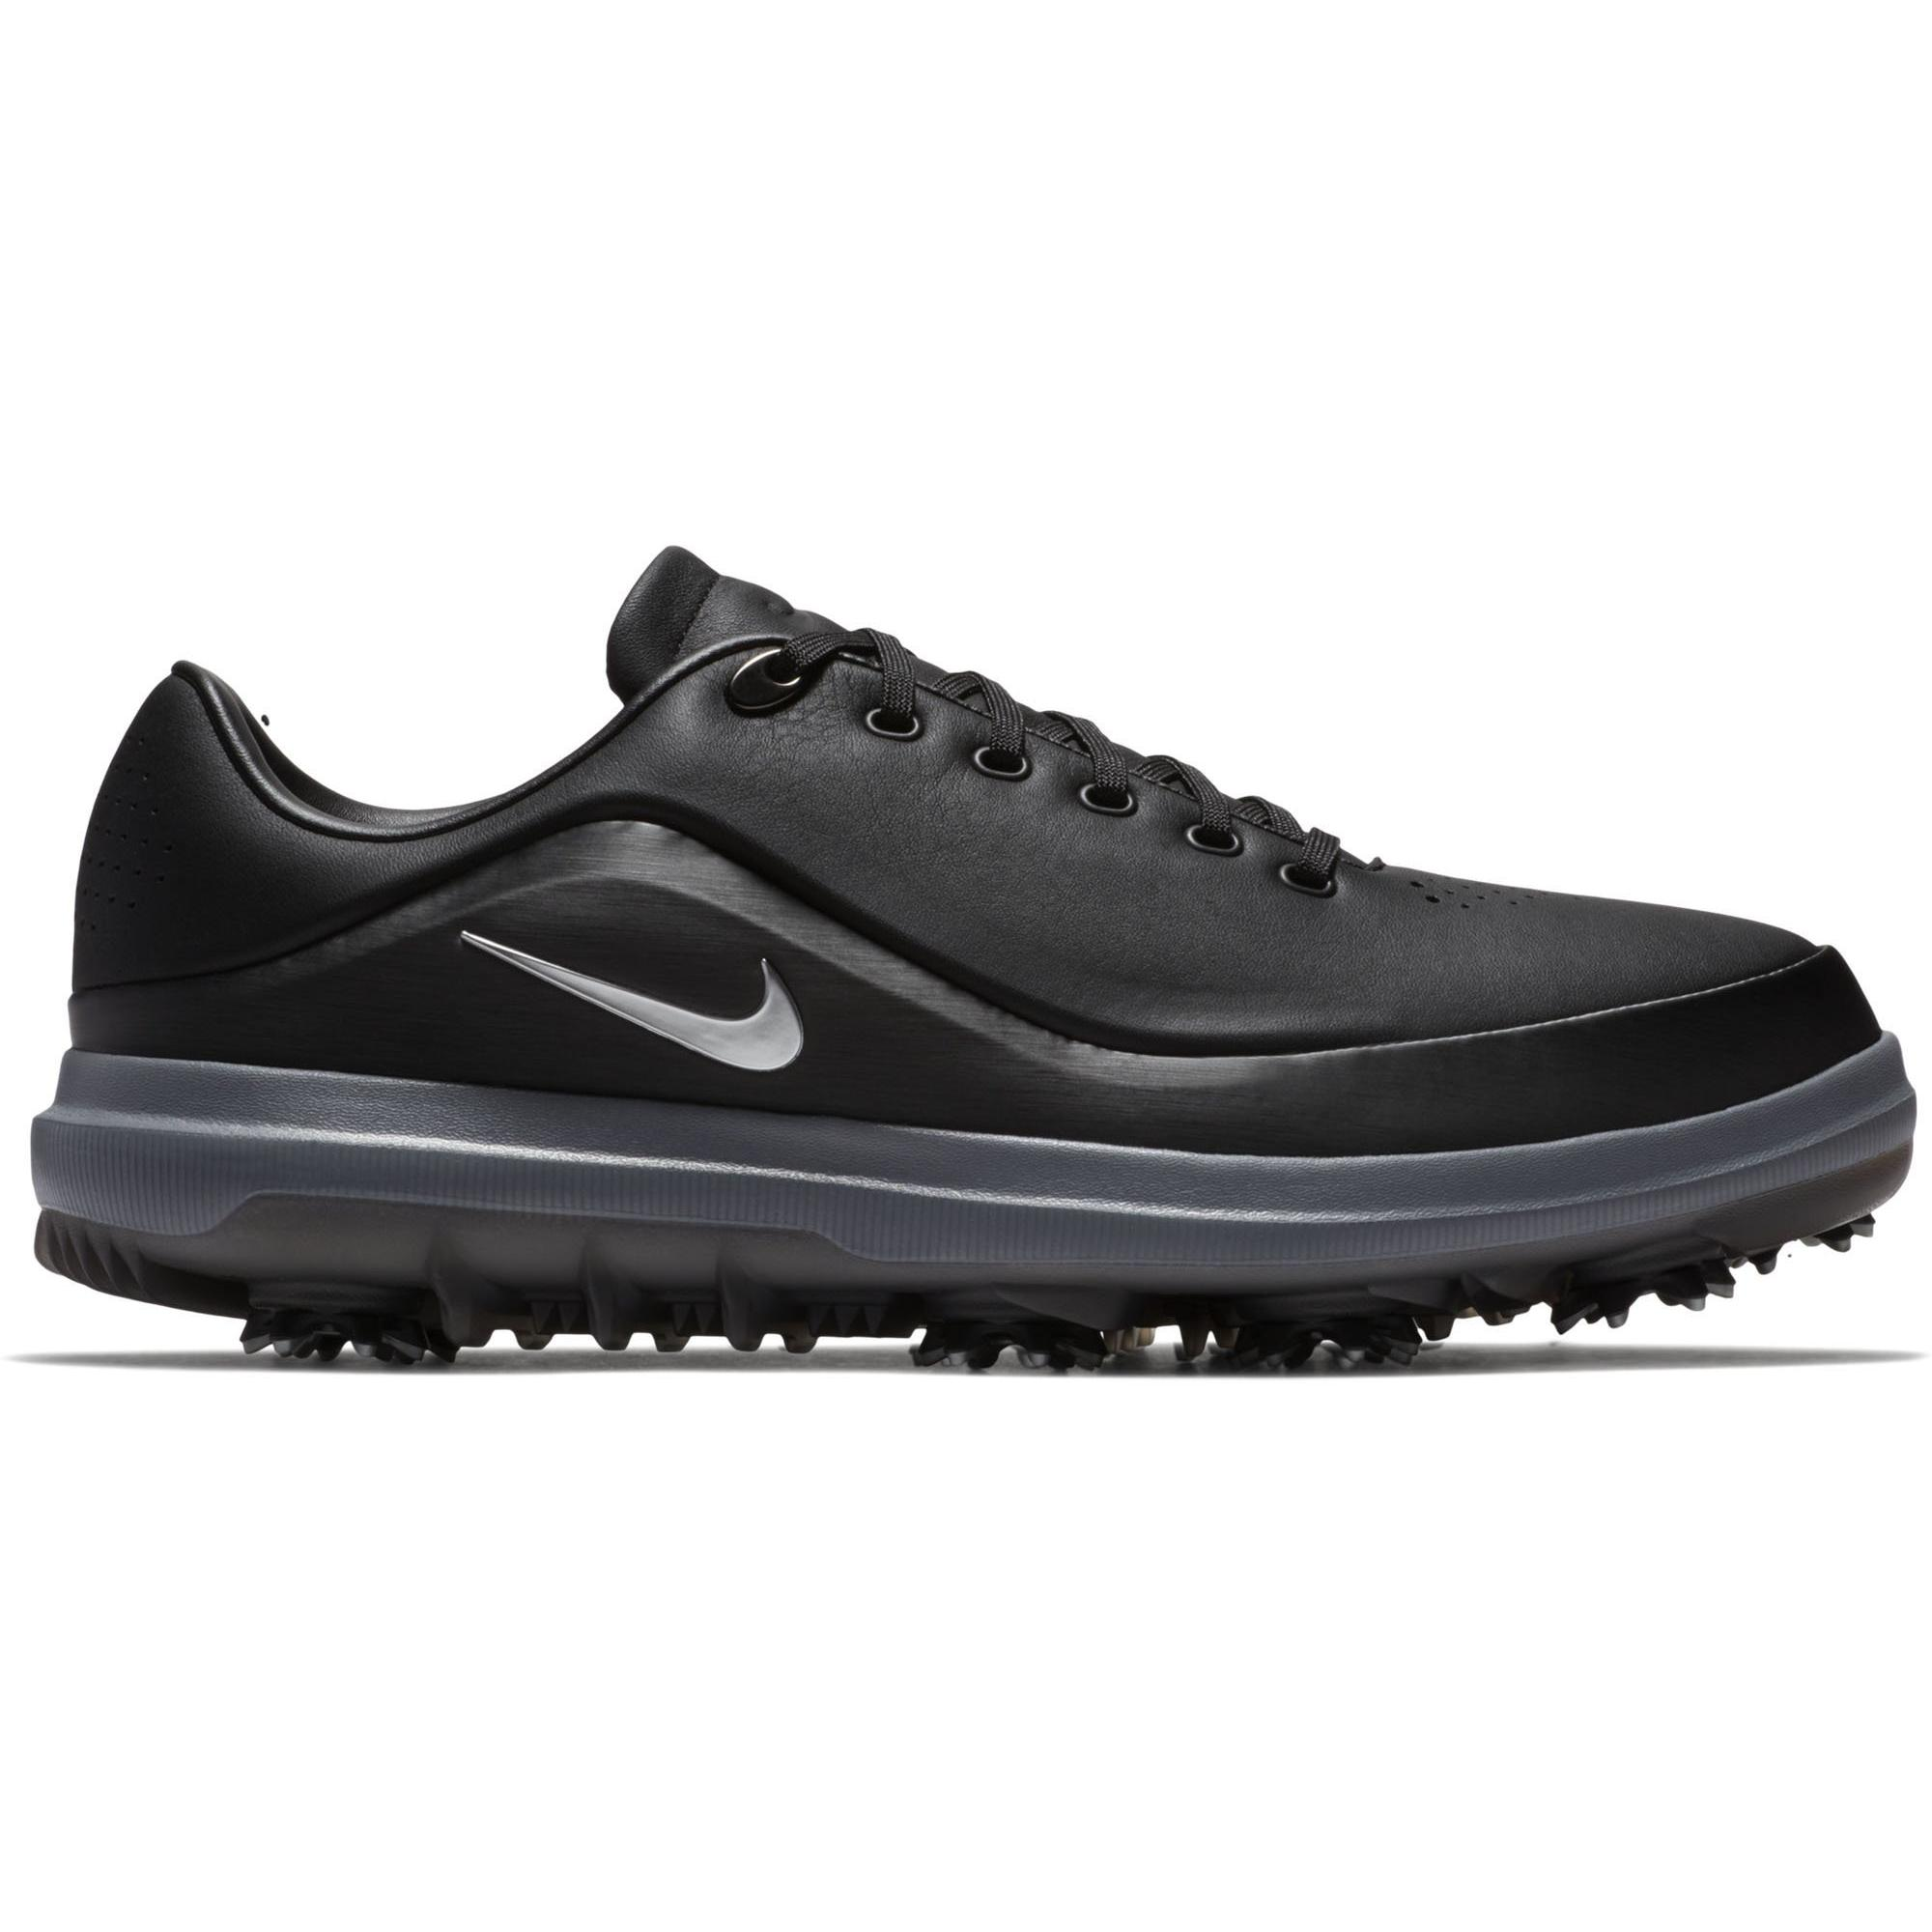 Mens Air Zoom Precision Spiked Golf Shoe - Black